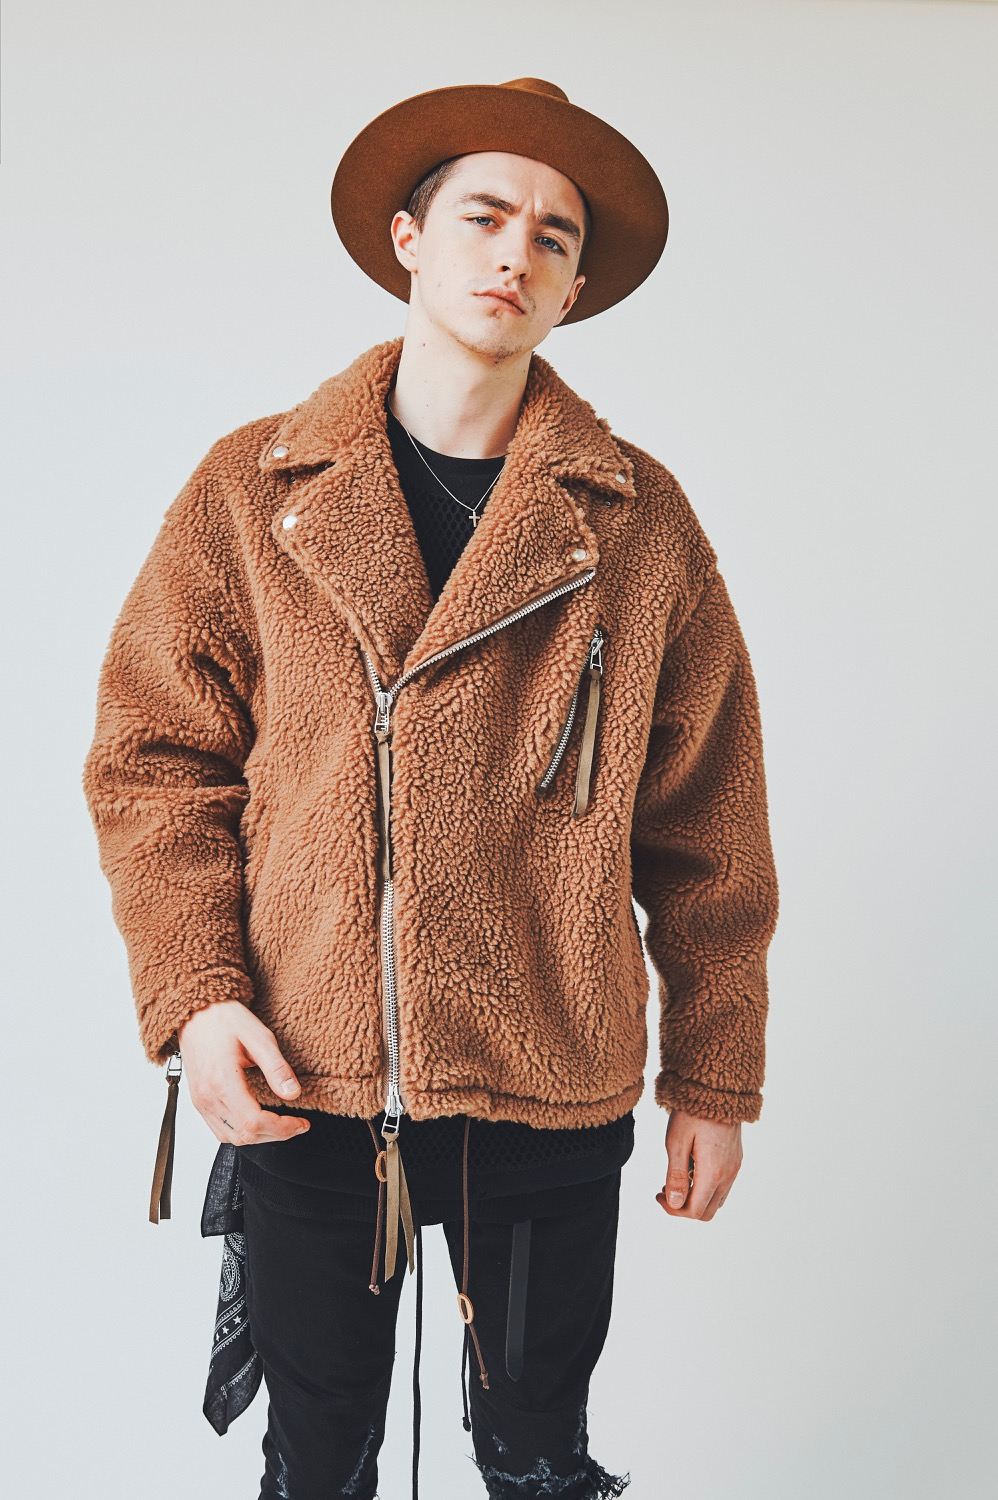 CH18AW LOOK 5